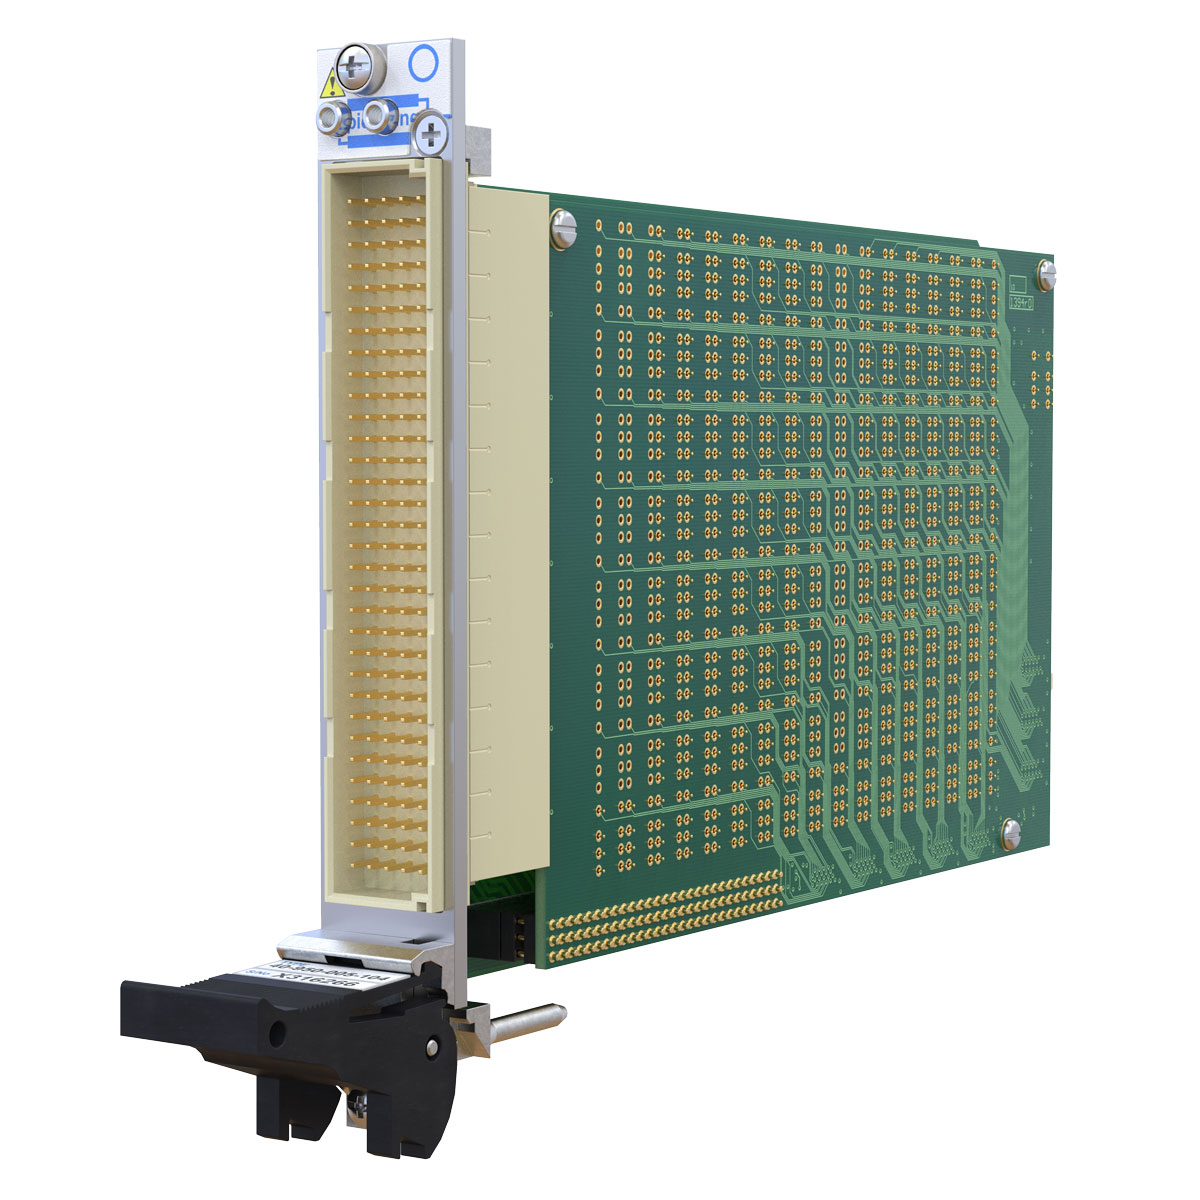 40-619 PXI Monitored Multiplexer Module